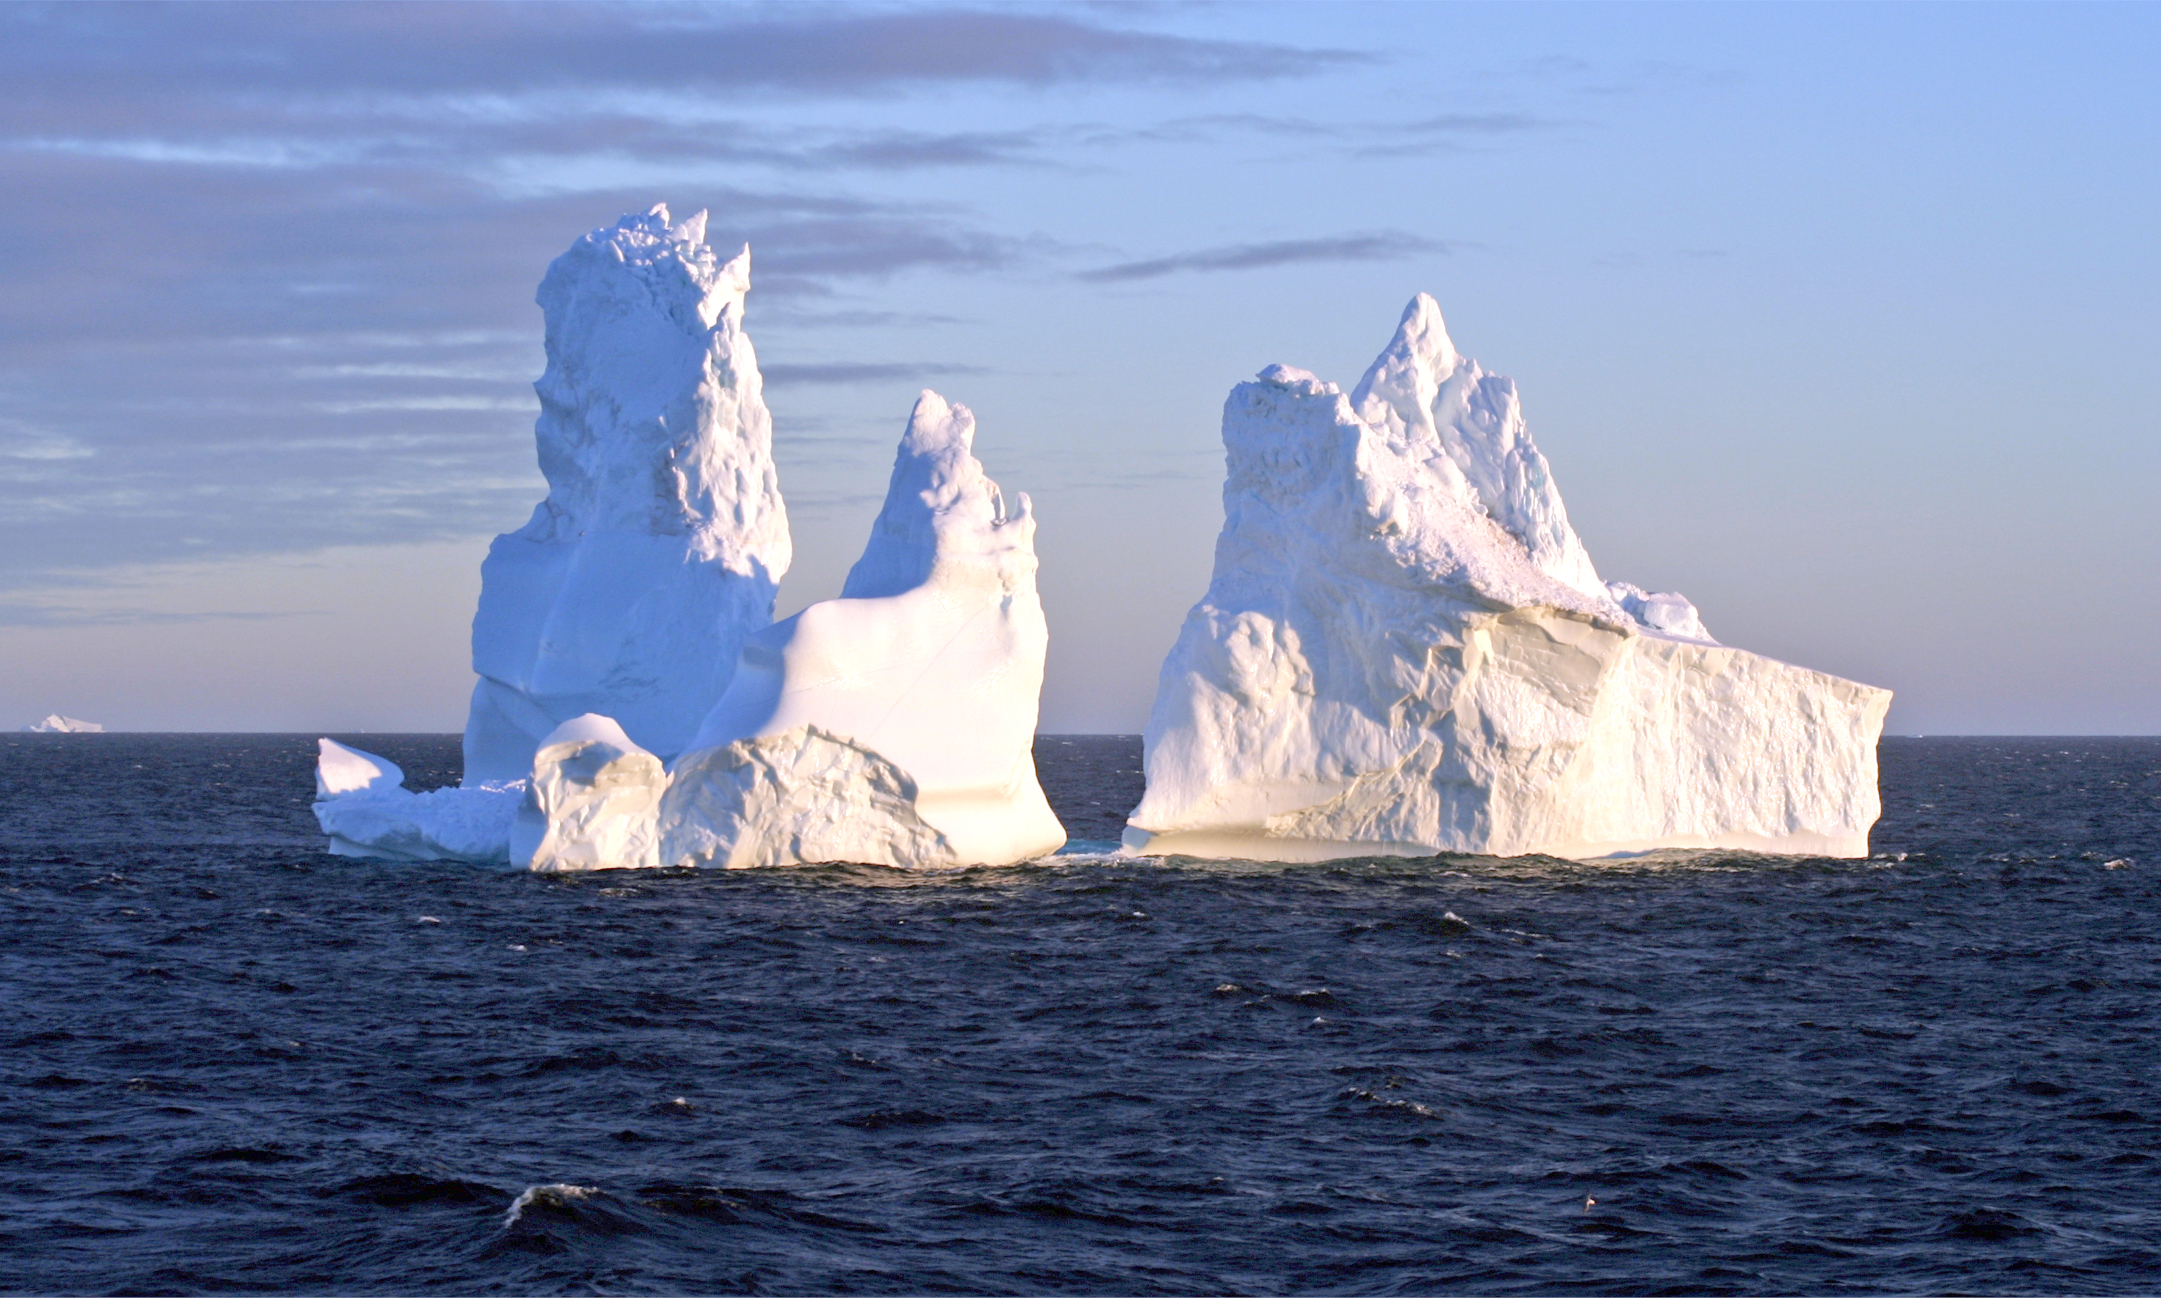 Not a joke: UAE might host iceberg towing project